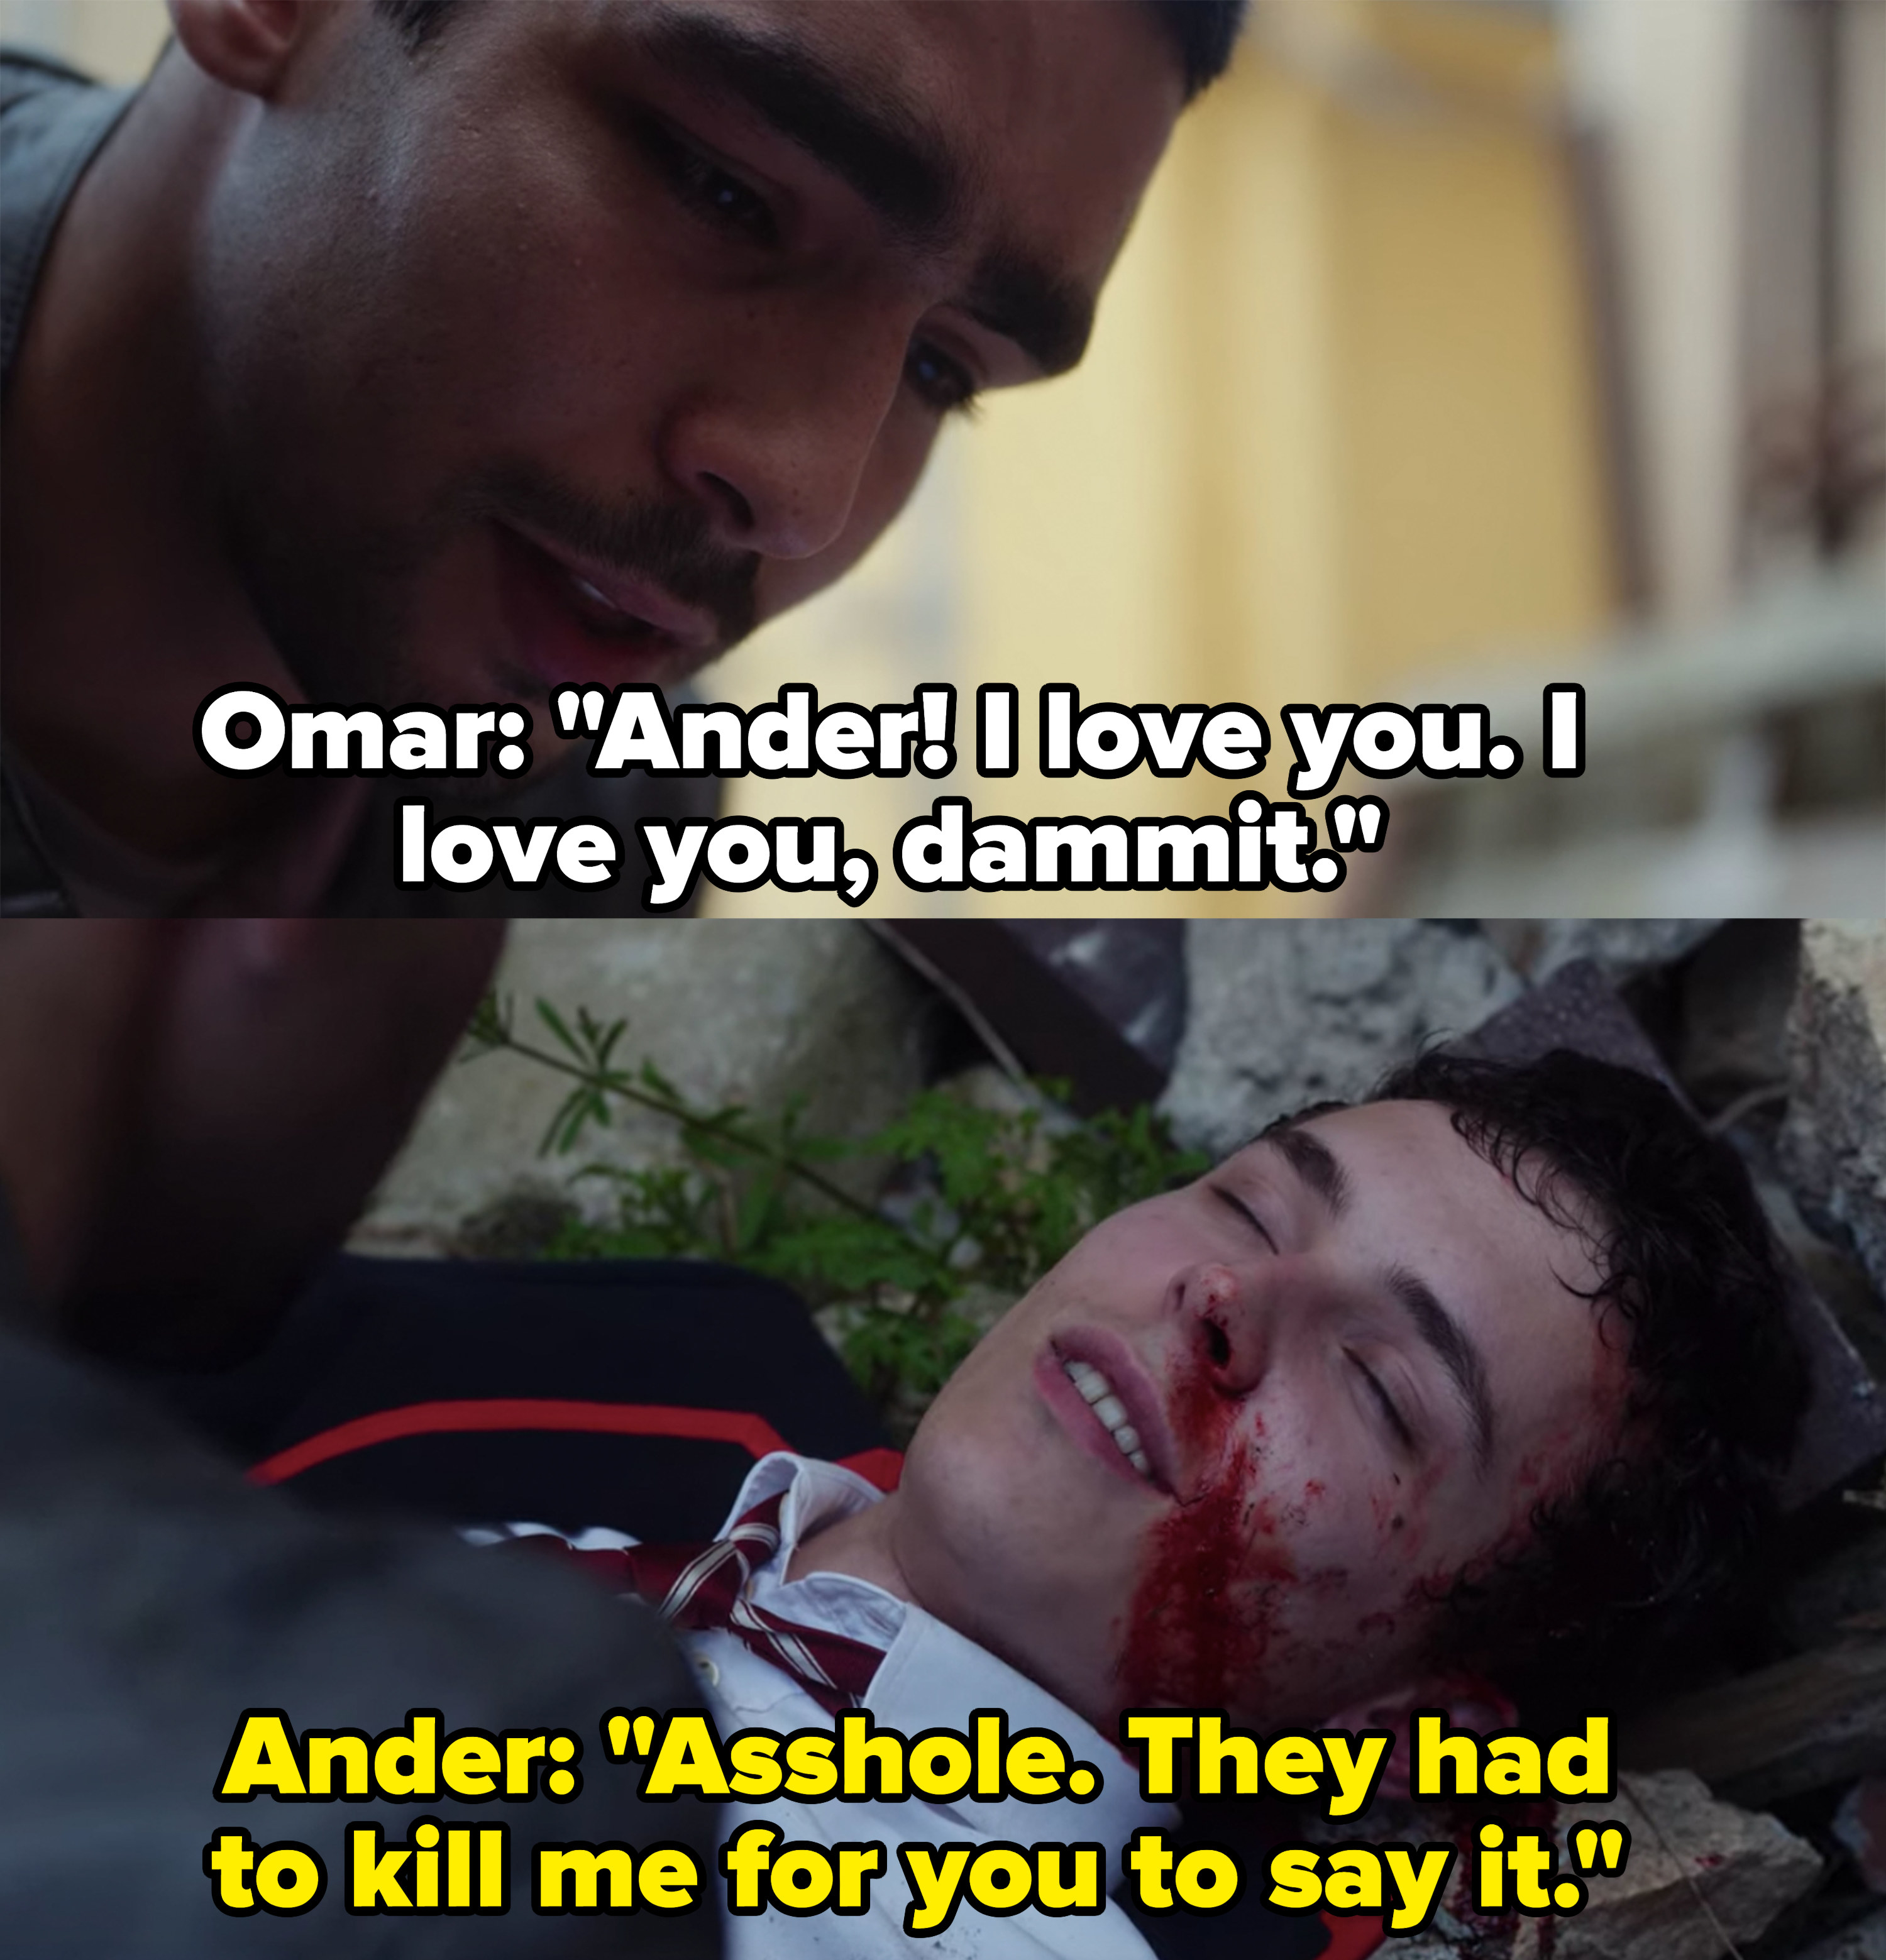 Omar says he loves Ander after Ander gets beat up in a fight, Ander calls him an asshole and says he almost had to die for him to say it